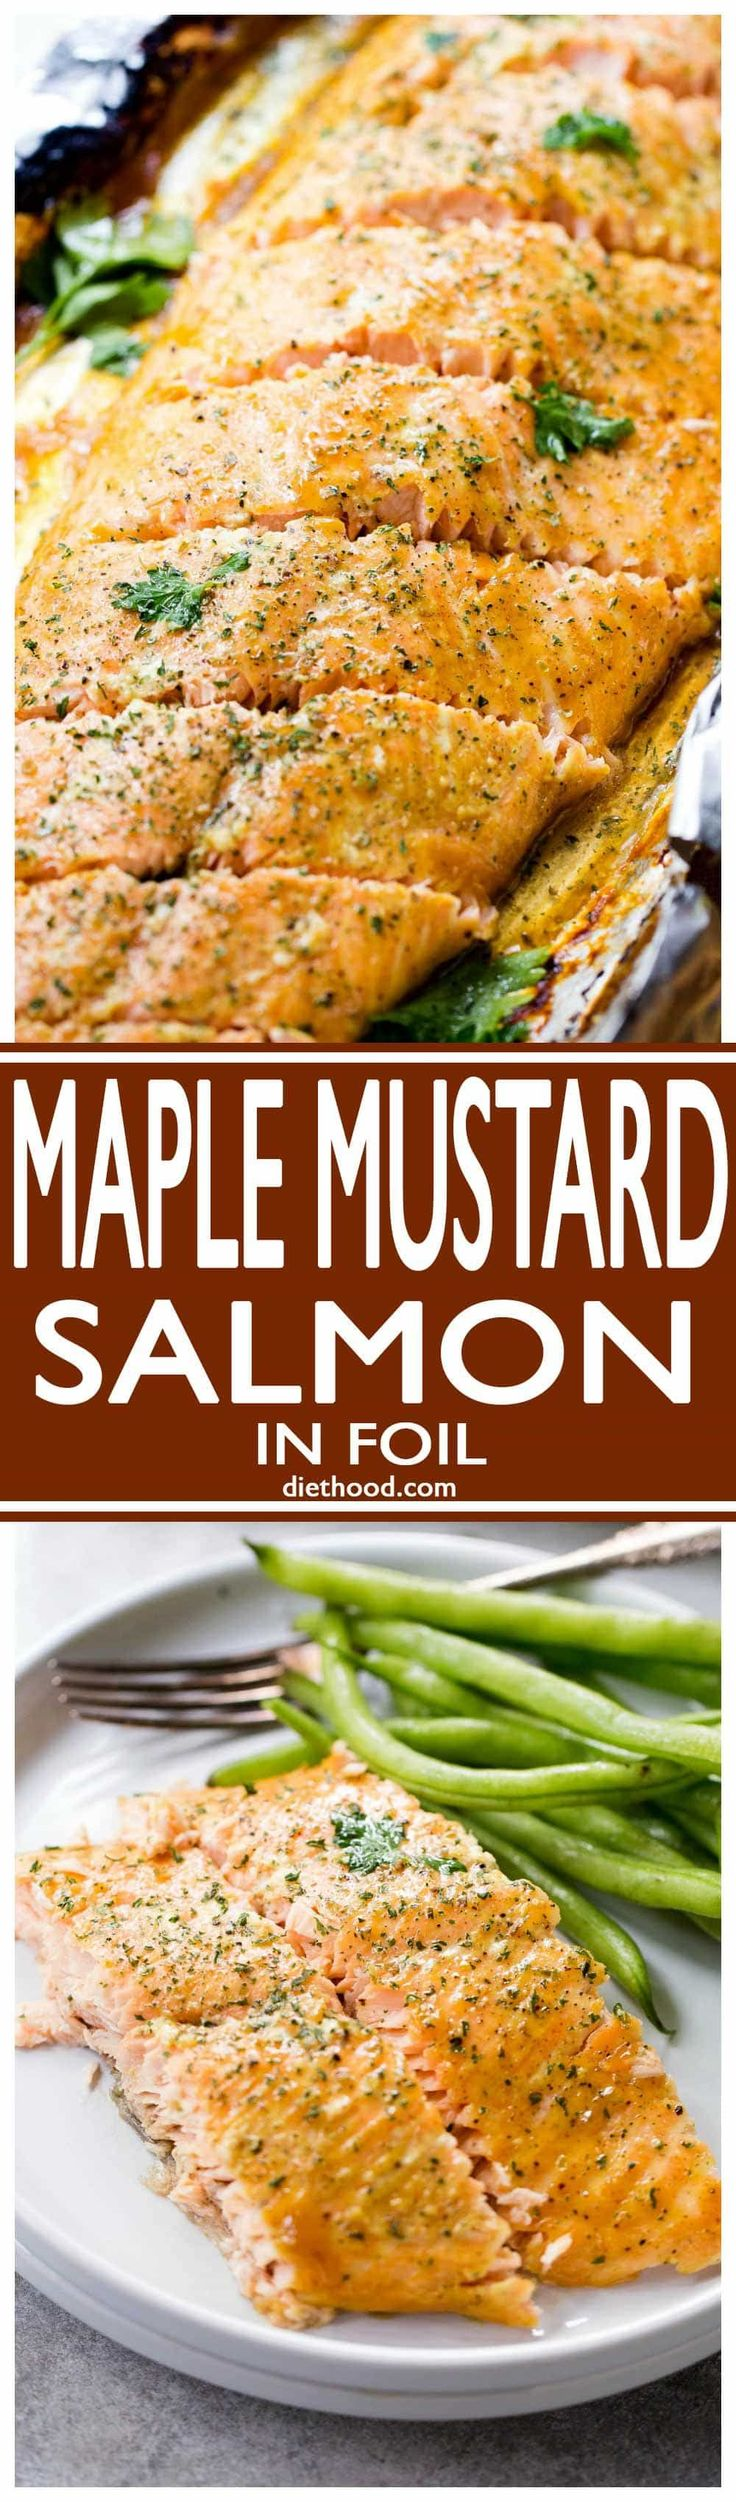 Maple Mustard Salmon in Foil - Delicious, sweet and tangy salmon coated with an amazing maple syrup and mustard sauce, and baked in tin foil to a flaky perfection! http://grillidea.com/best-smoker-grills/